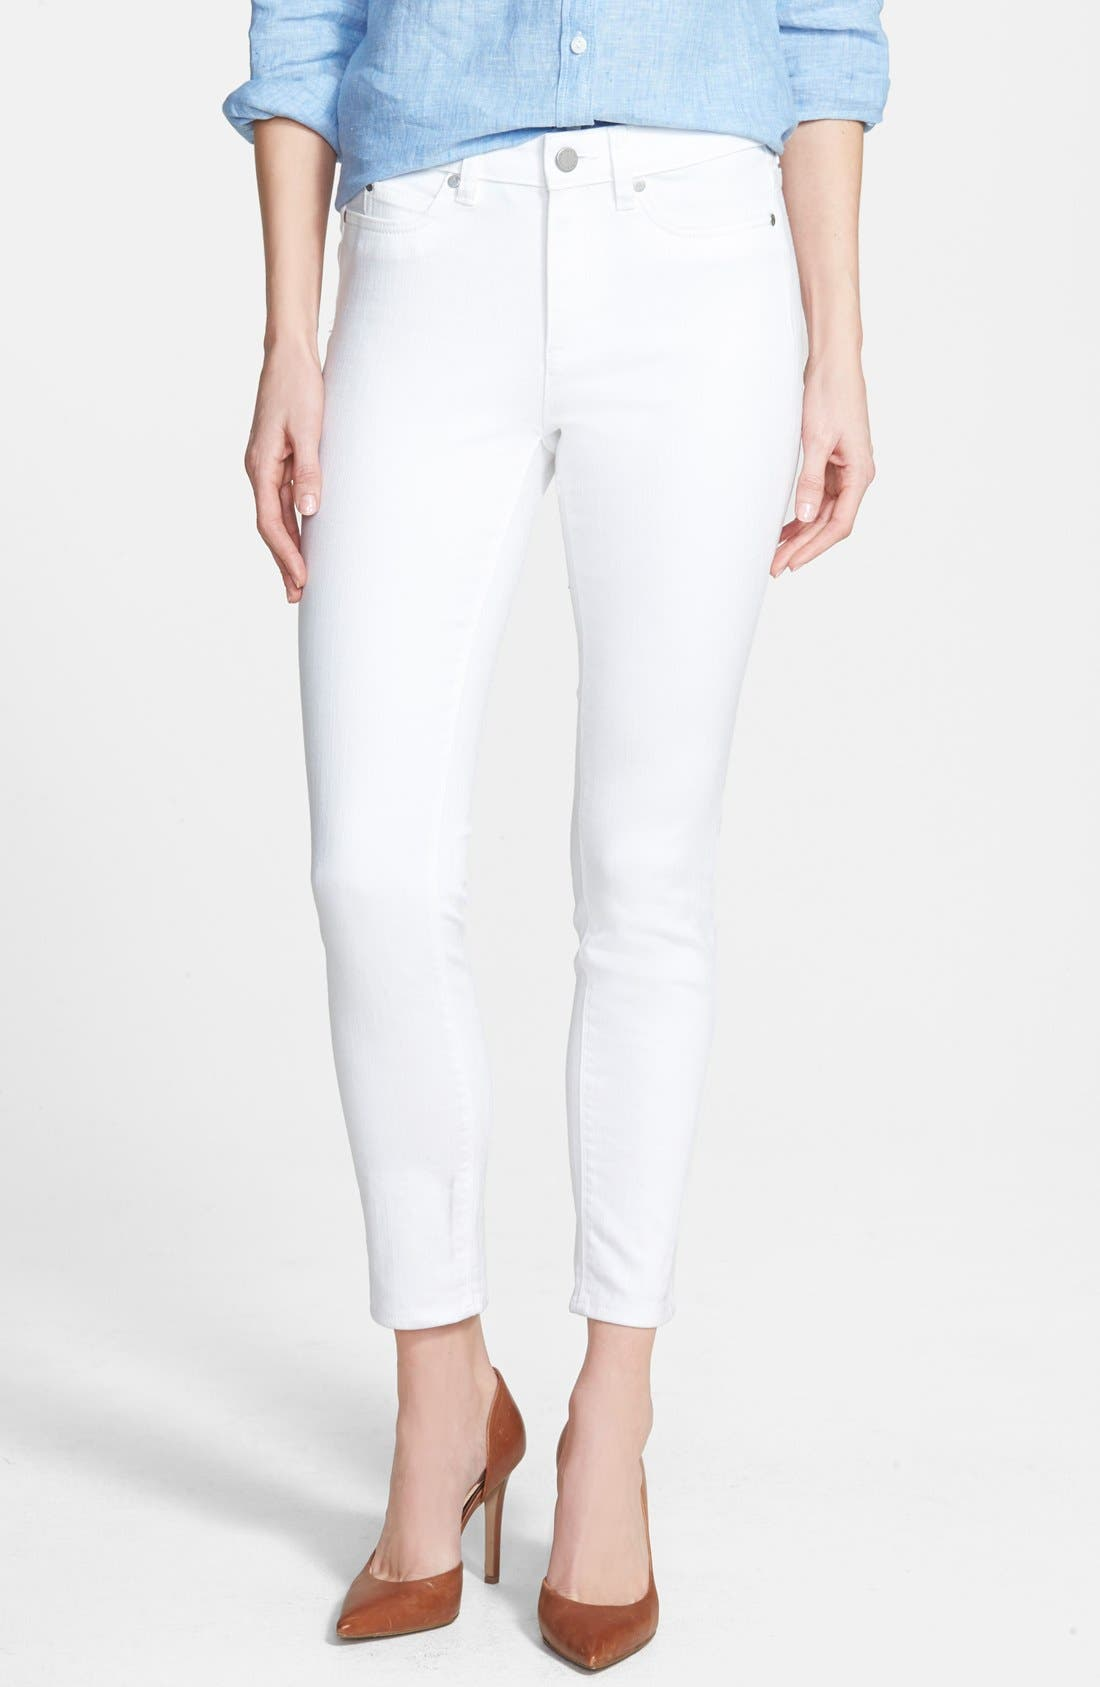 VINCE CAMUTO, Skinny Jeans, Main thumbnail 1, color, ULTRA WHITE